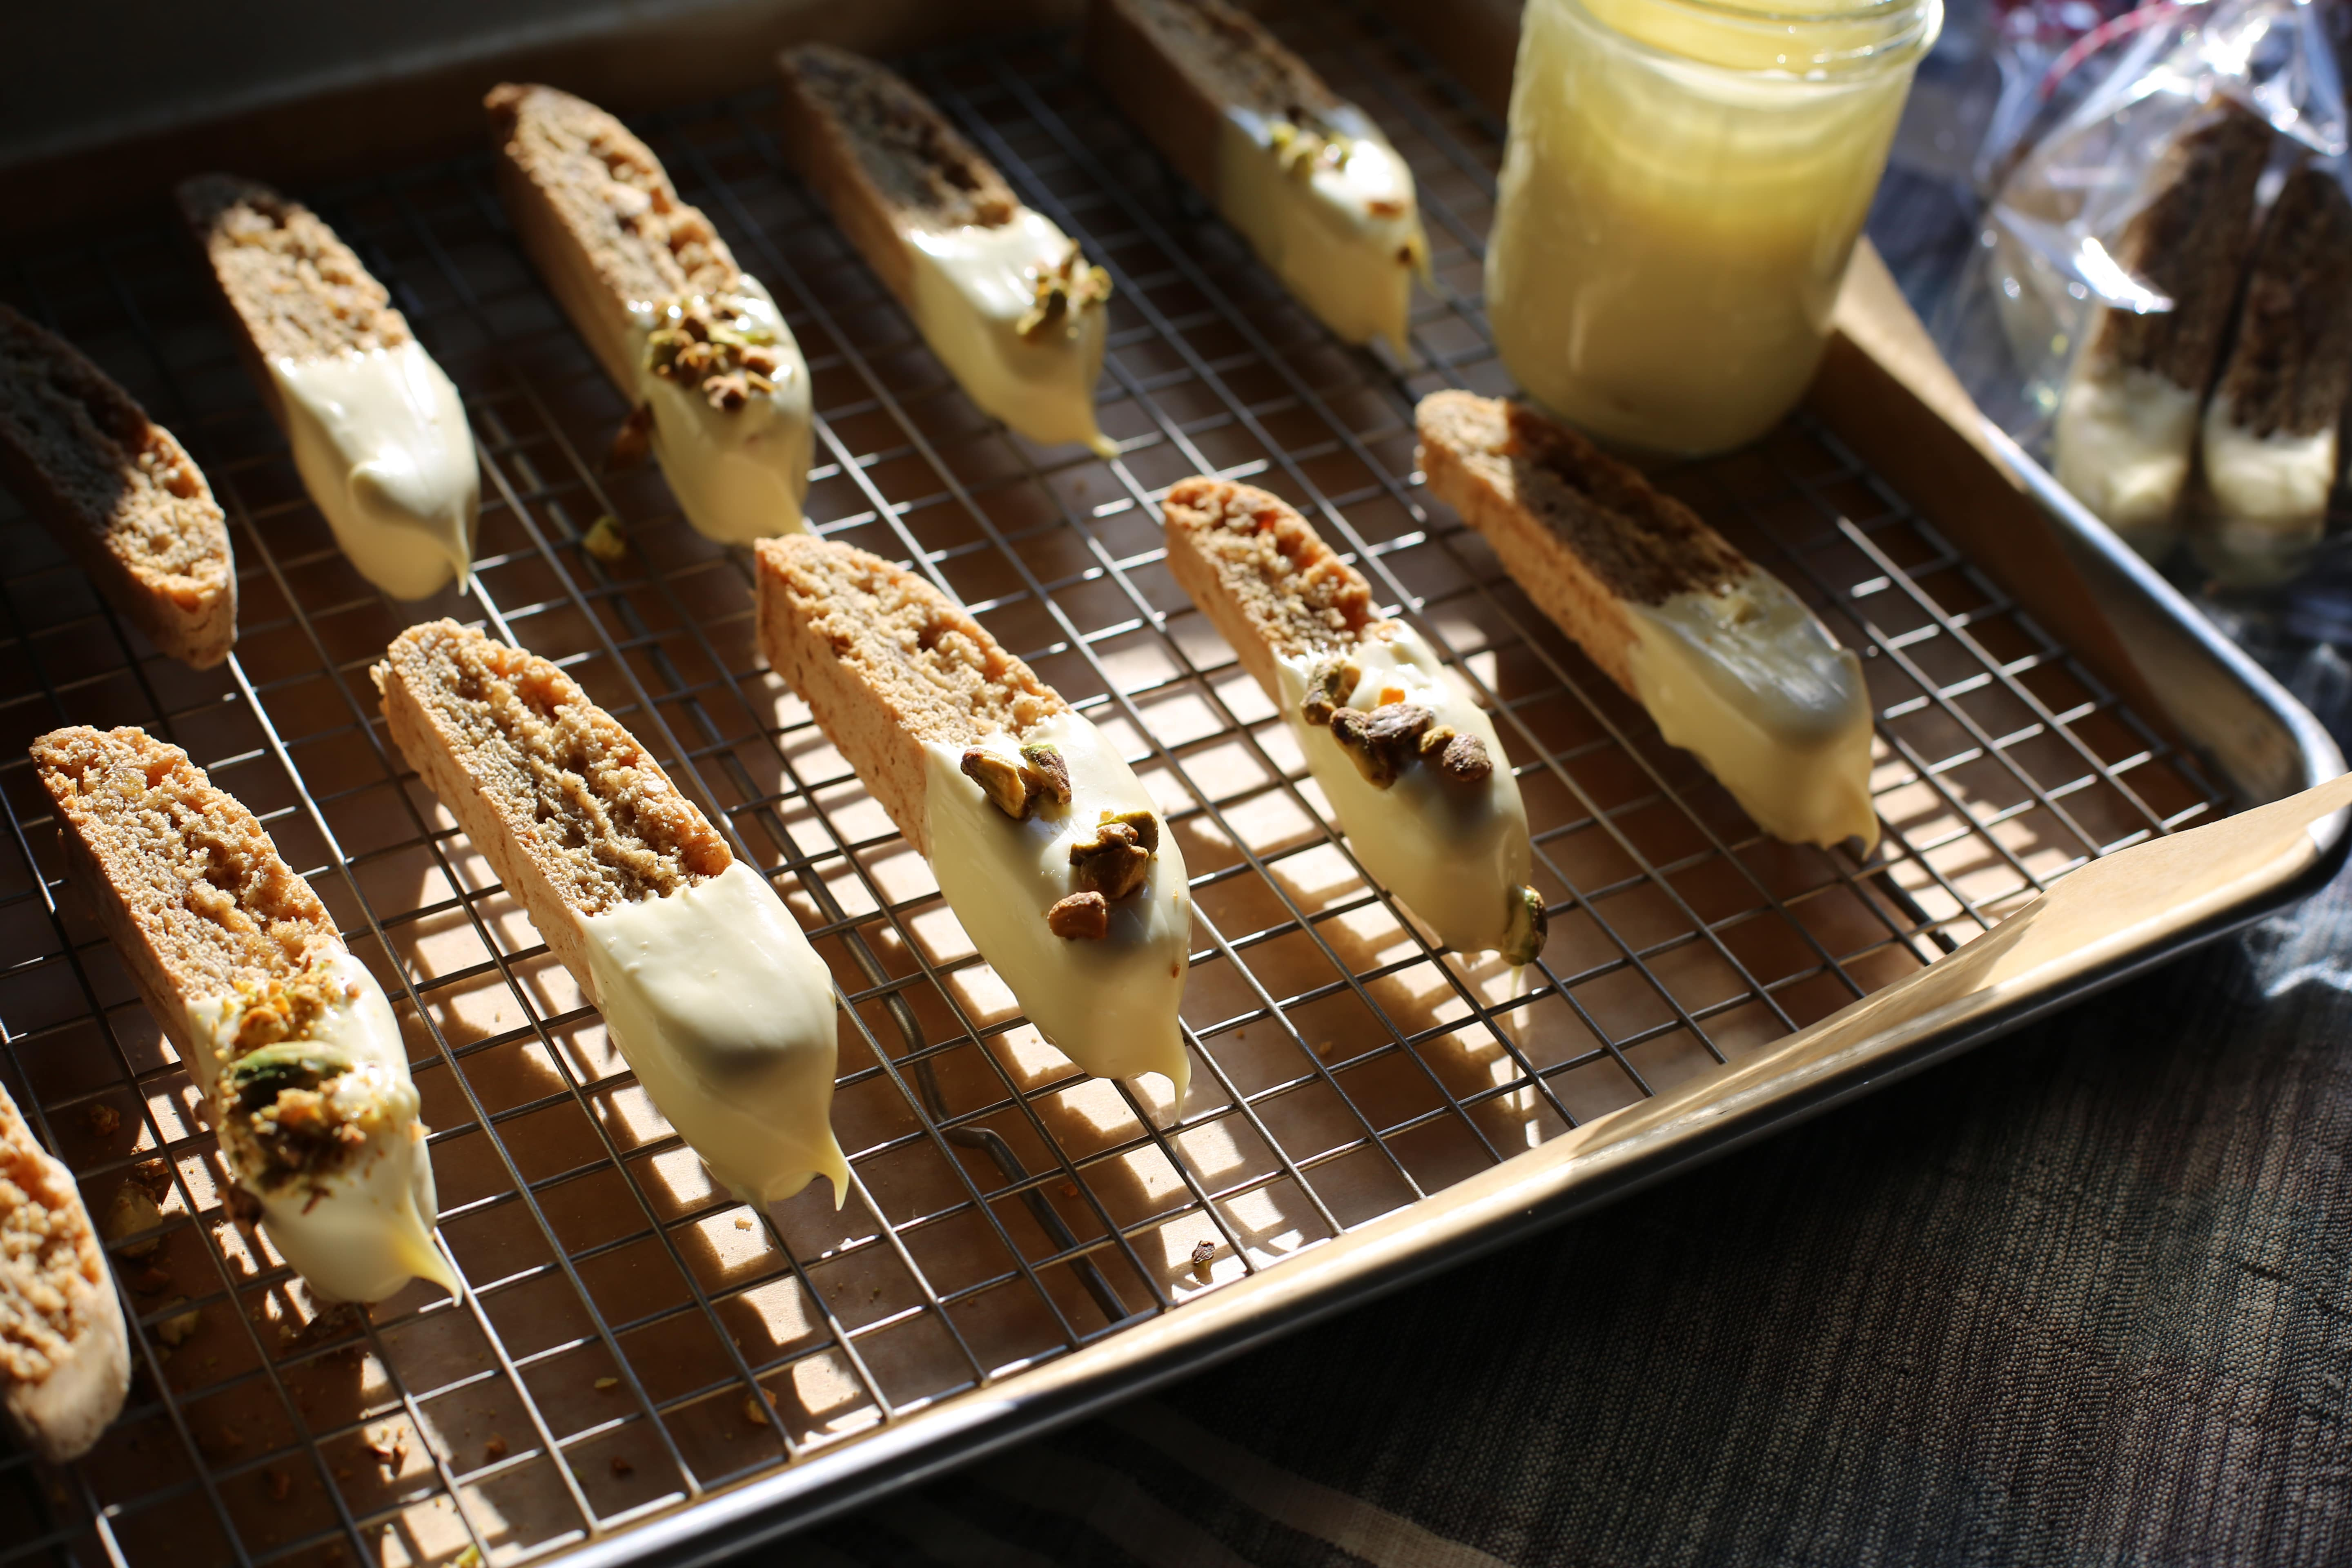 a baking sheet of biscotti with a glass jar of melted white chocolate next to it for dipping.